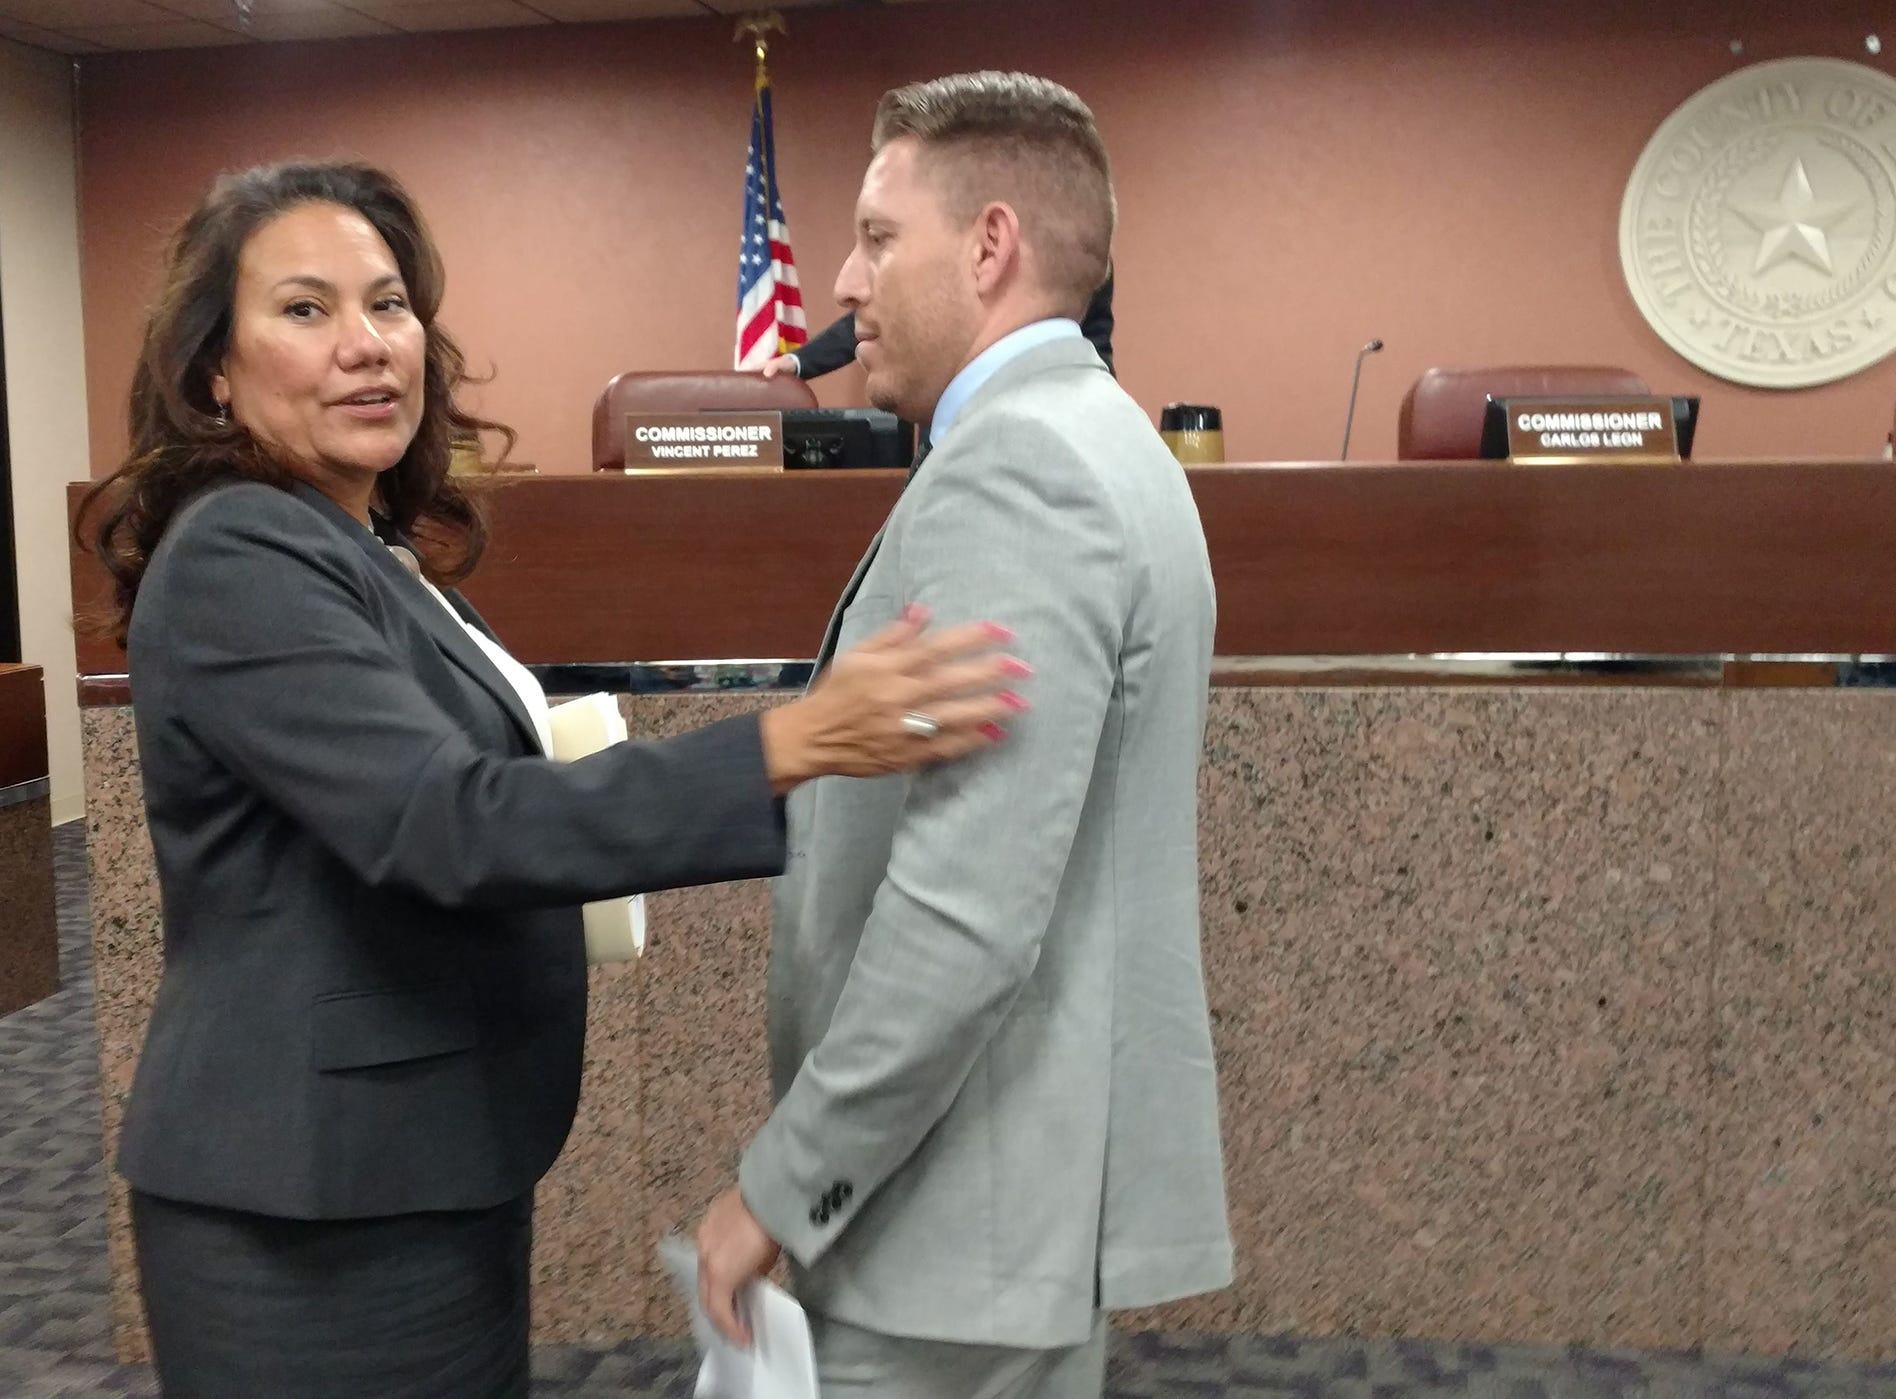 Outgoing County Judge Veronica Escobar talks to her replacement, Ruben Vogt, after county commissioners chose him 4-1 for the position.